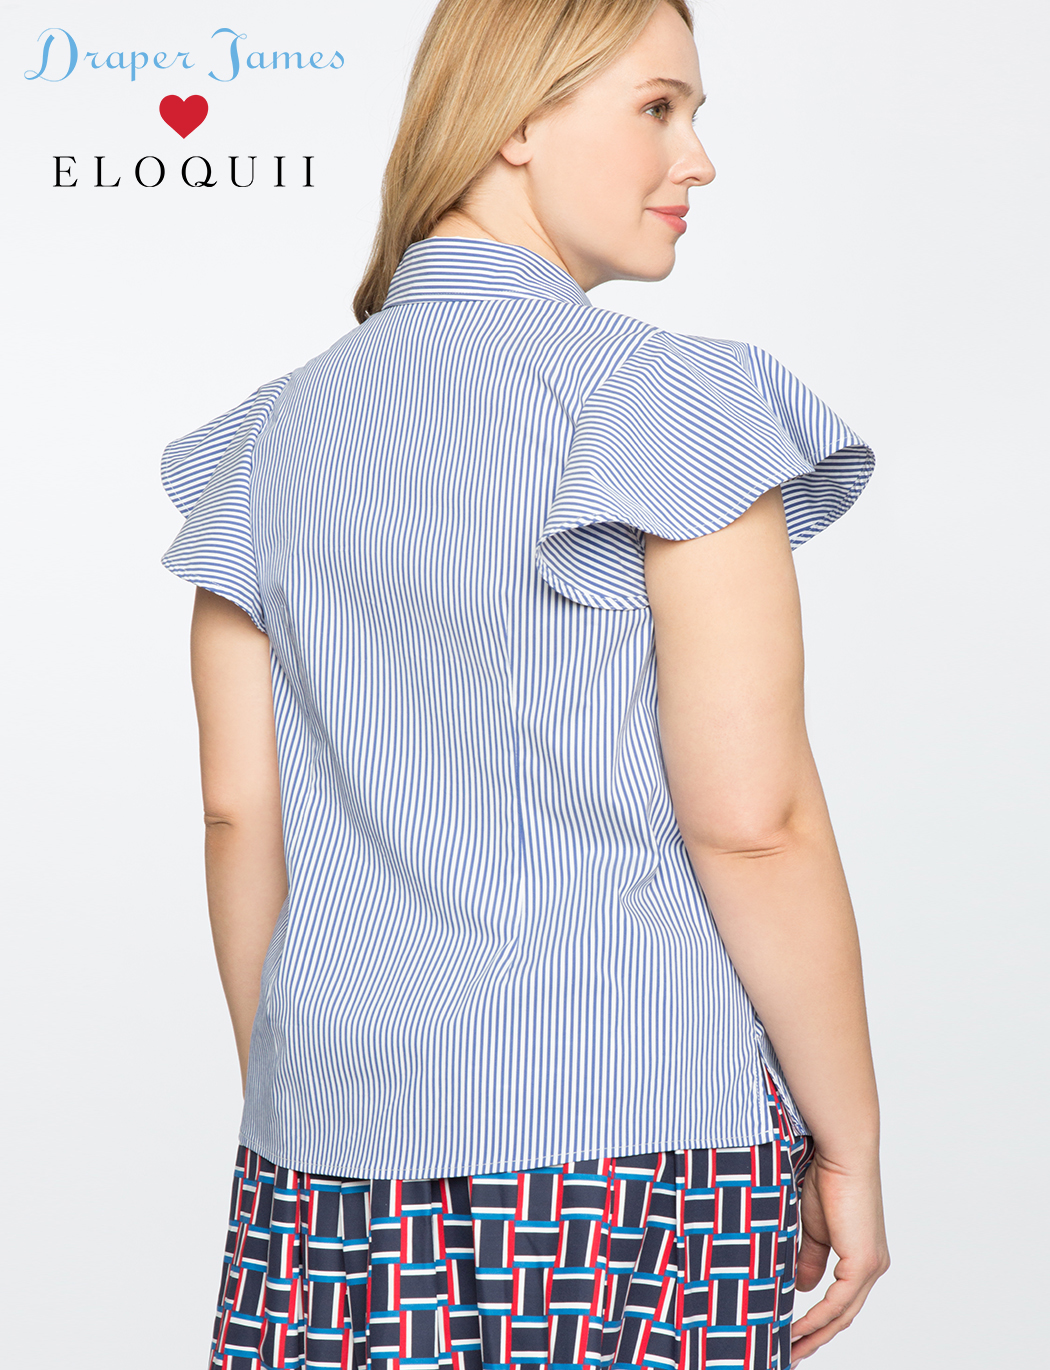 Draper James for ELOQUII Stripe Button Down Flutter Sleeve Top